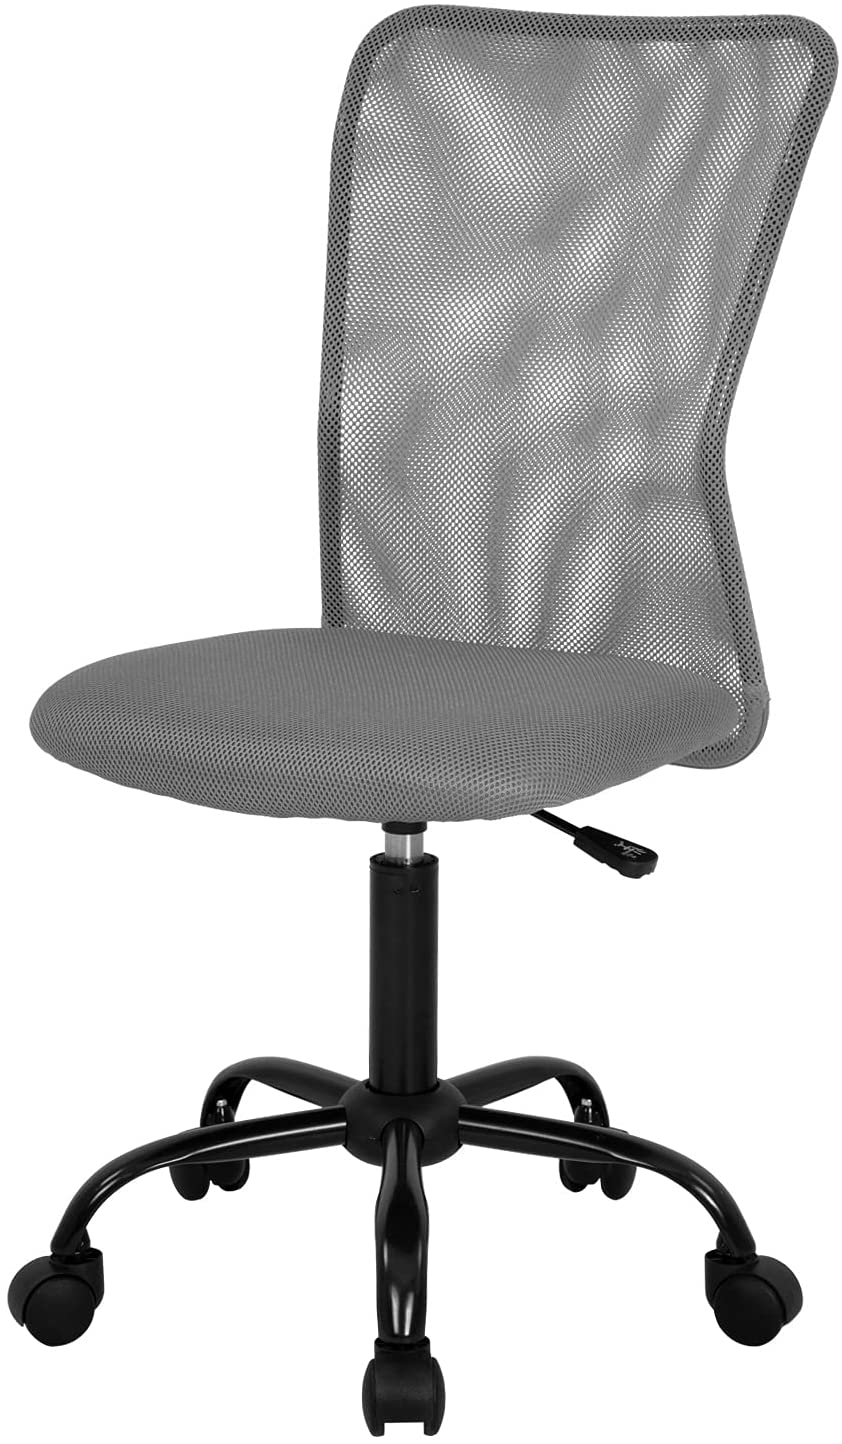 Home Office Chair Mid Back Mesh Desk Chair Armless Computer Chair Ergonomic Task Rolling Swivel Chair Back Support Adjustable Modern Chair with Lumbar Support (Grey)